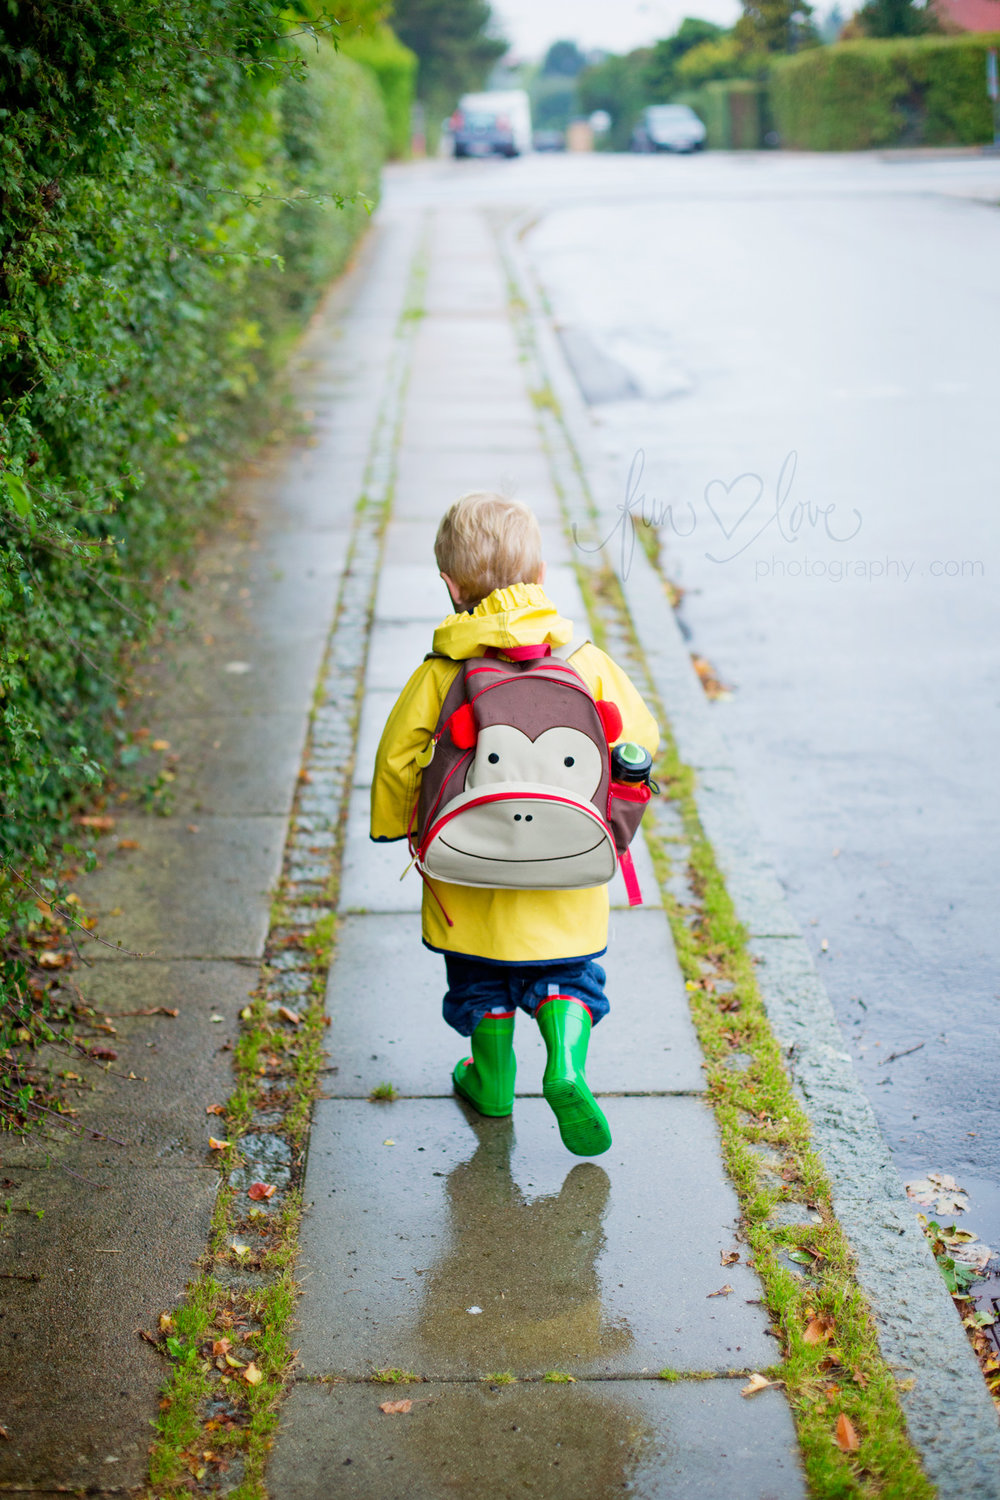 Heading to school, backpack on.